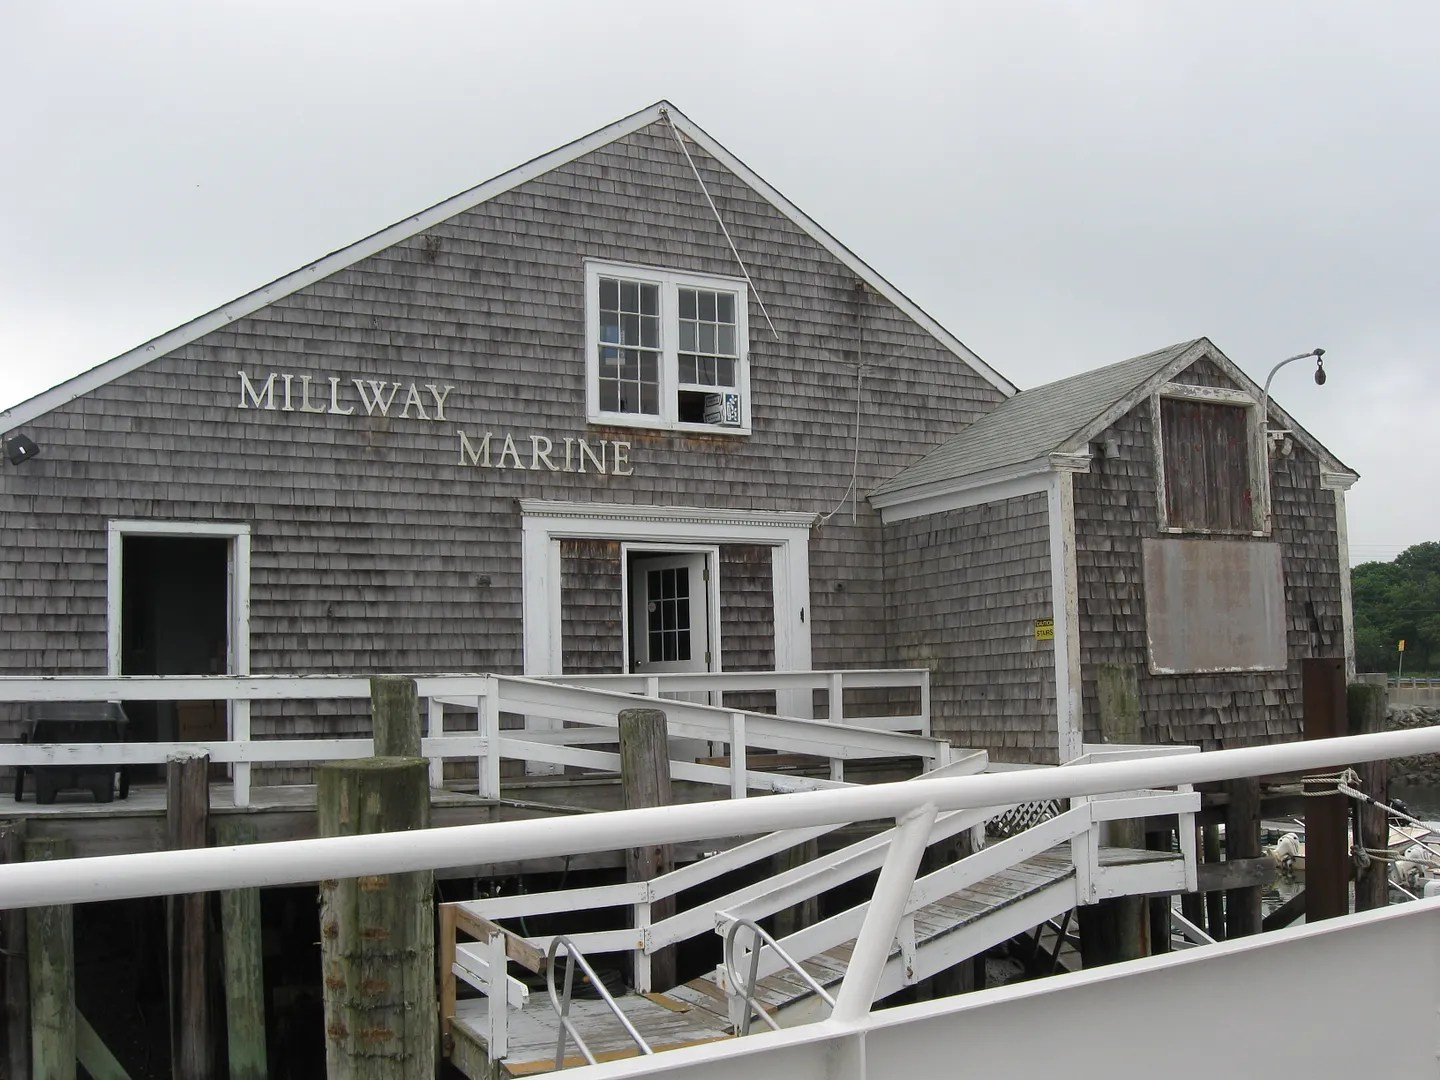 Millway Marine, Barnstable, Cape Cod, Massachusetts